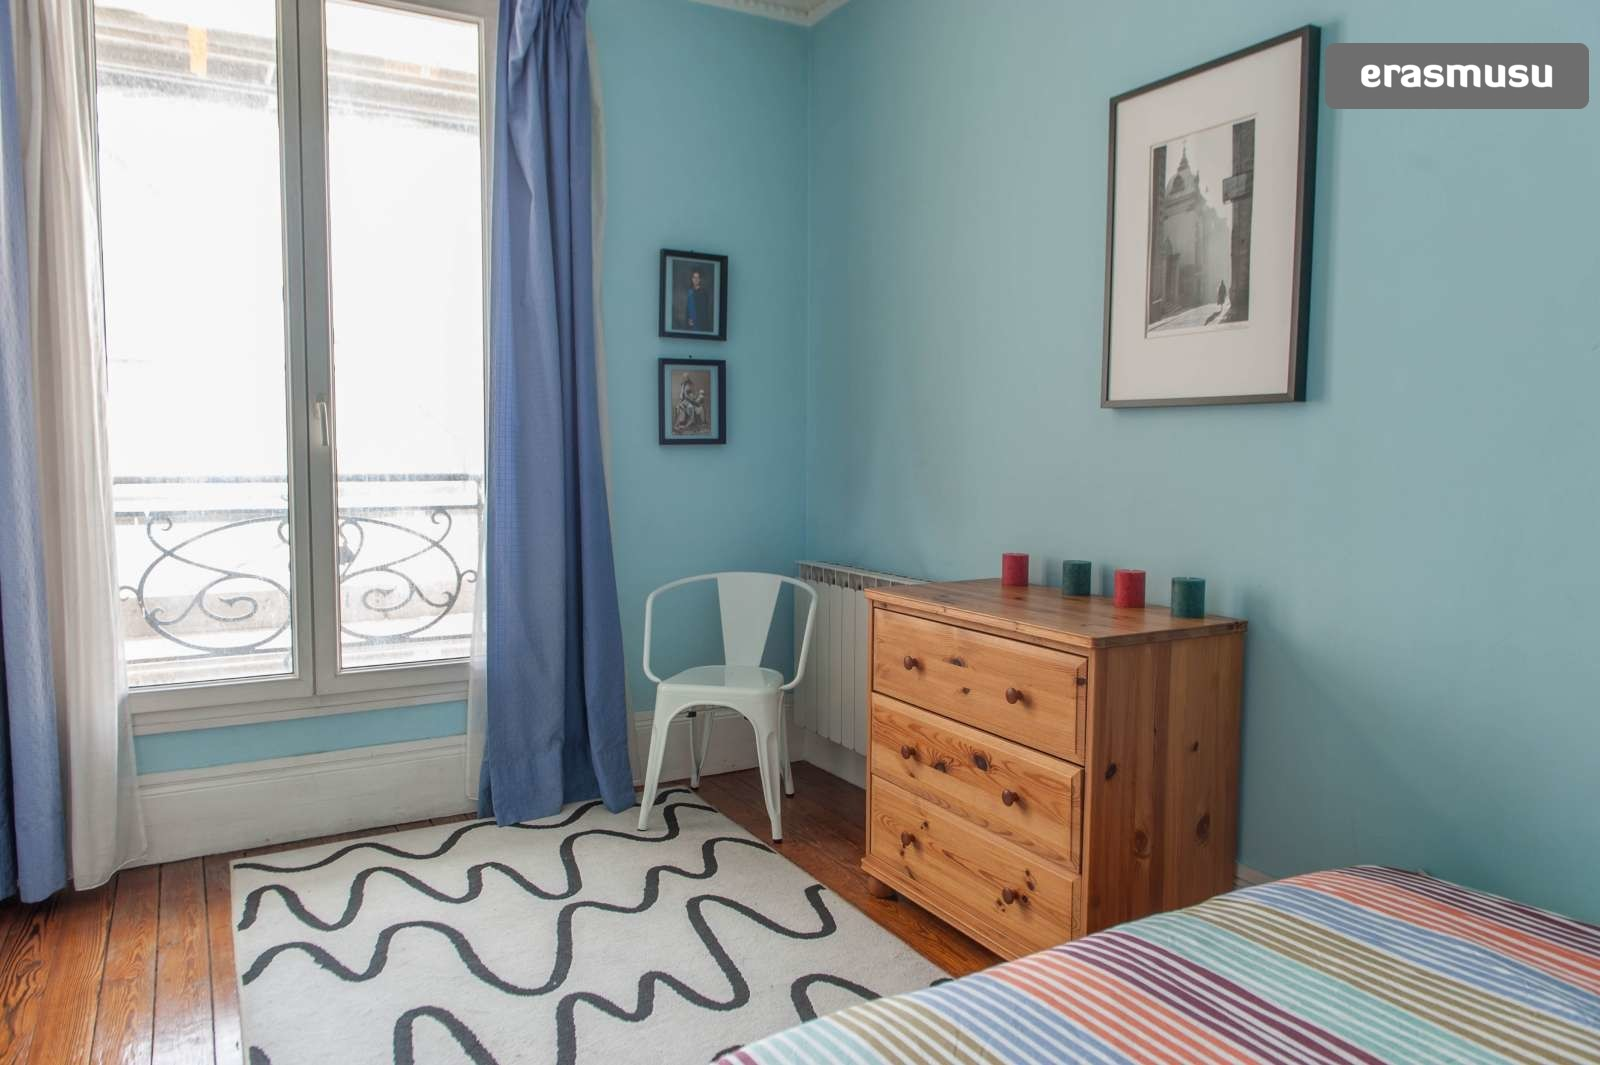 Miraculous Double Bed In Room For Rent In A 2 Bedroom Apartment In Paris Bills Included Beutiful Home Inspiration Xortanetmahrainfo